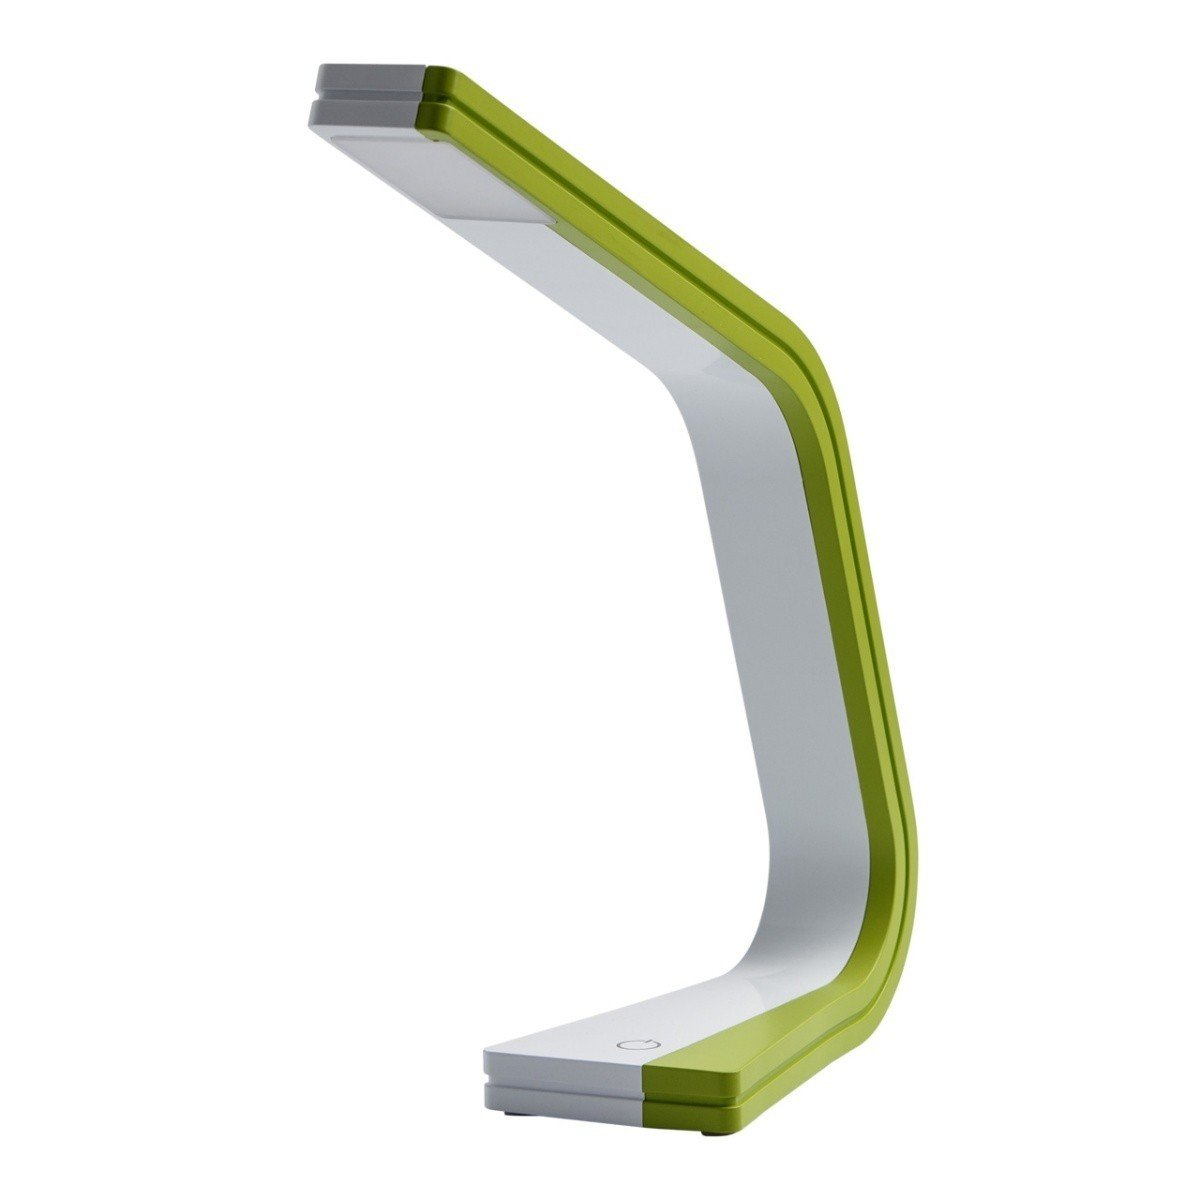 Lampa de birou MW-Light Techno, alb/verde, LED, design modern